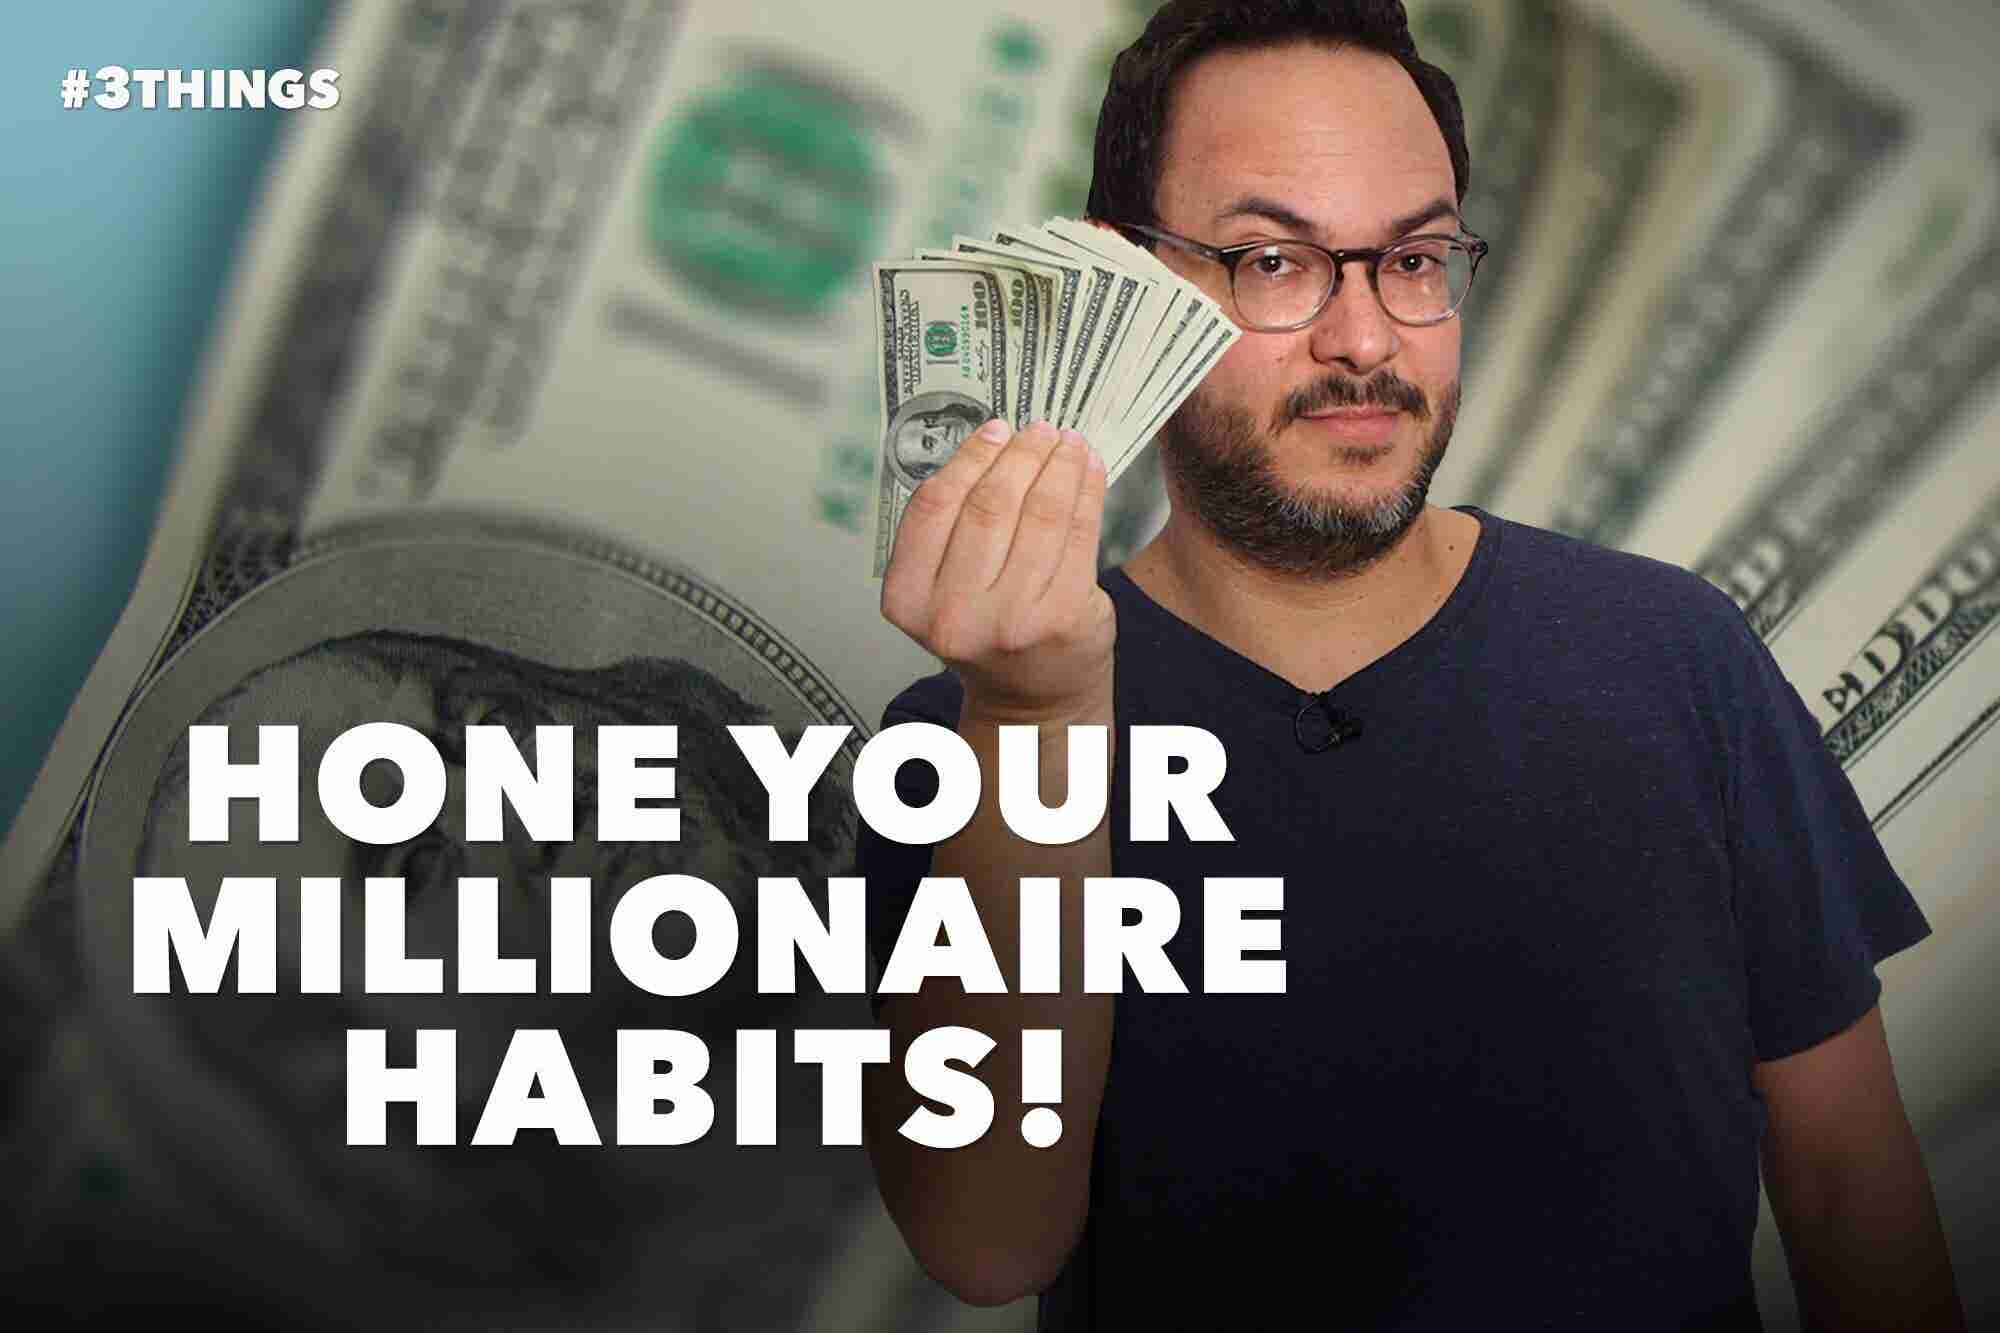 3 Tips for Developing the Financial Habits of a Millionaire (60-Second Video)